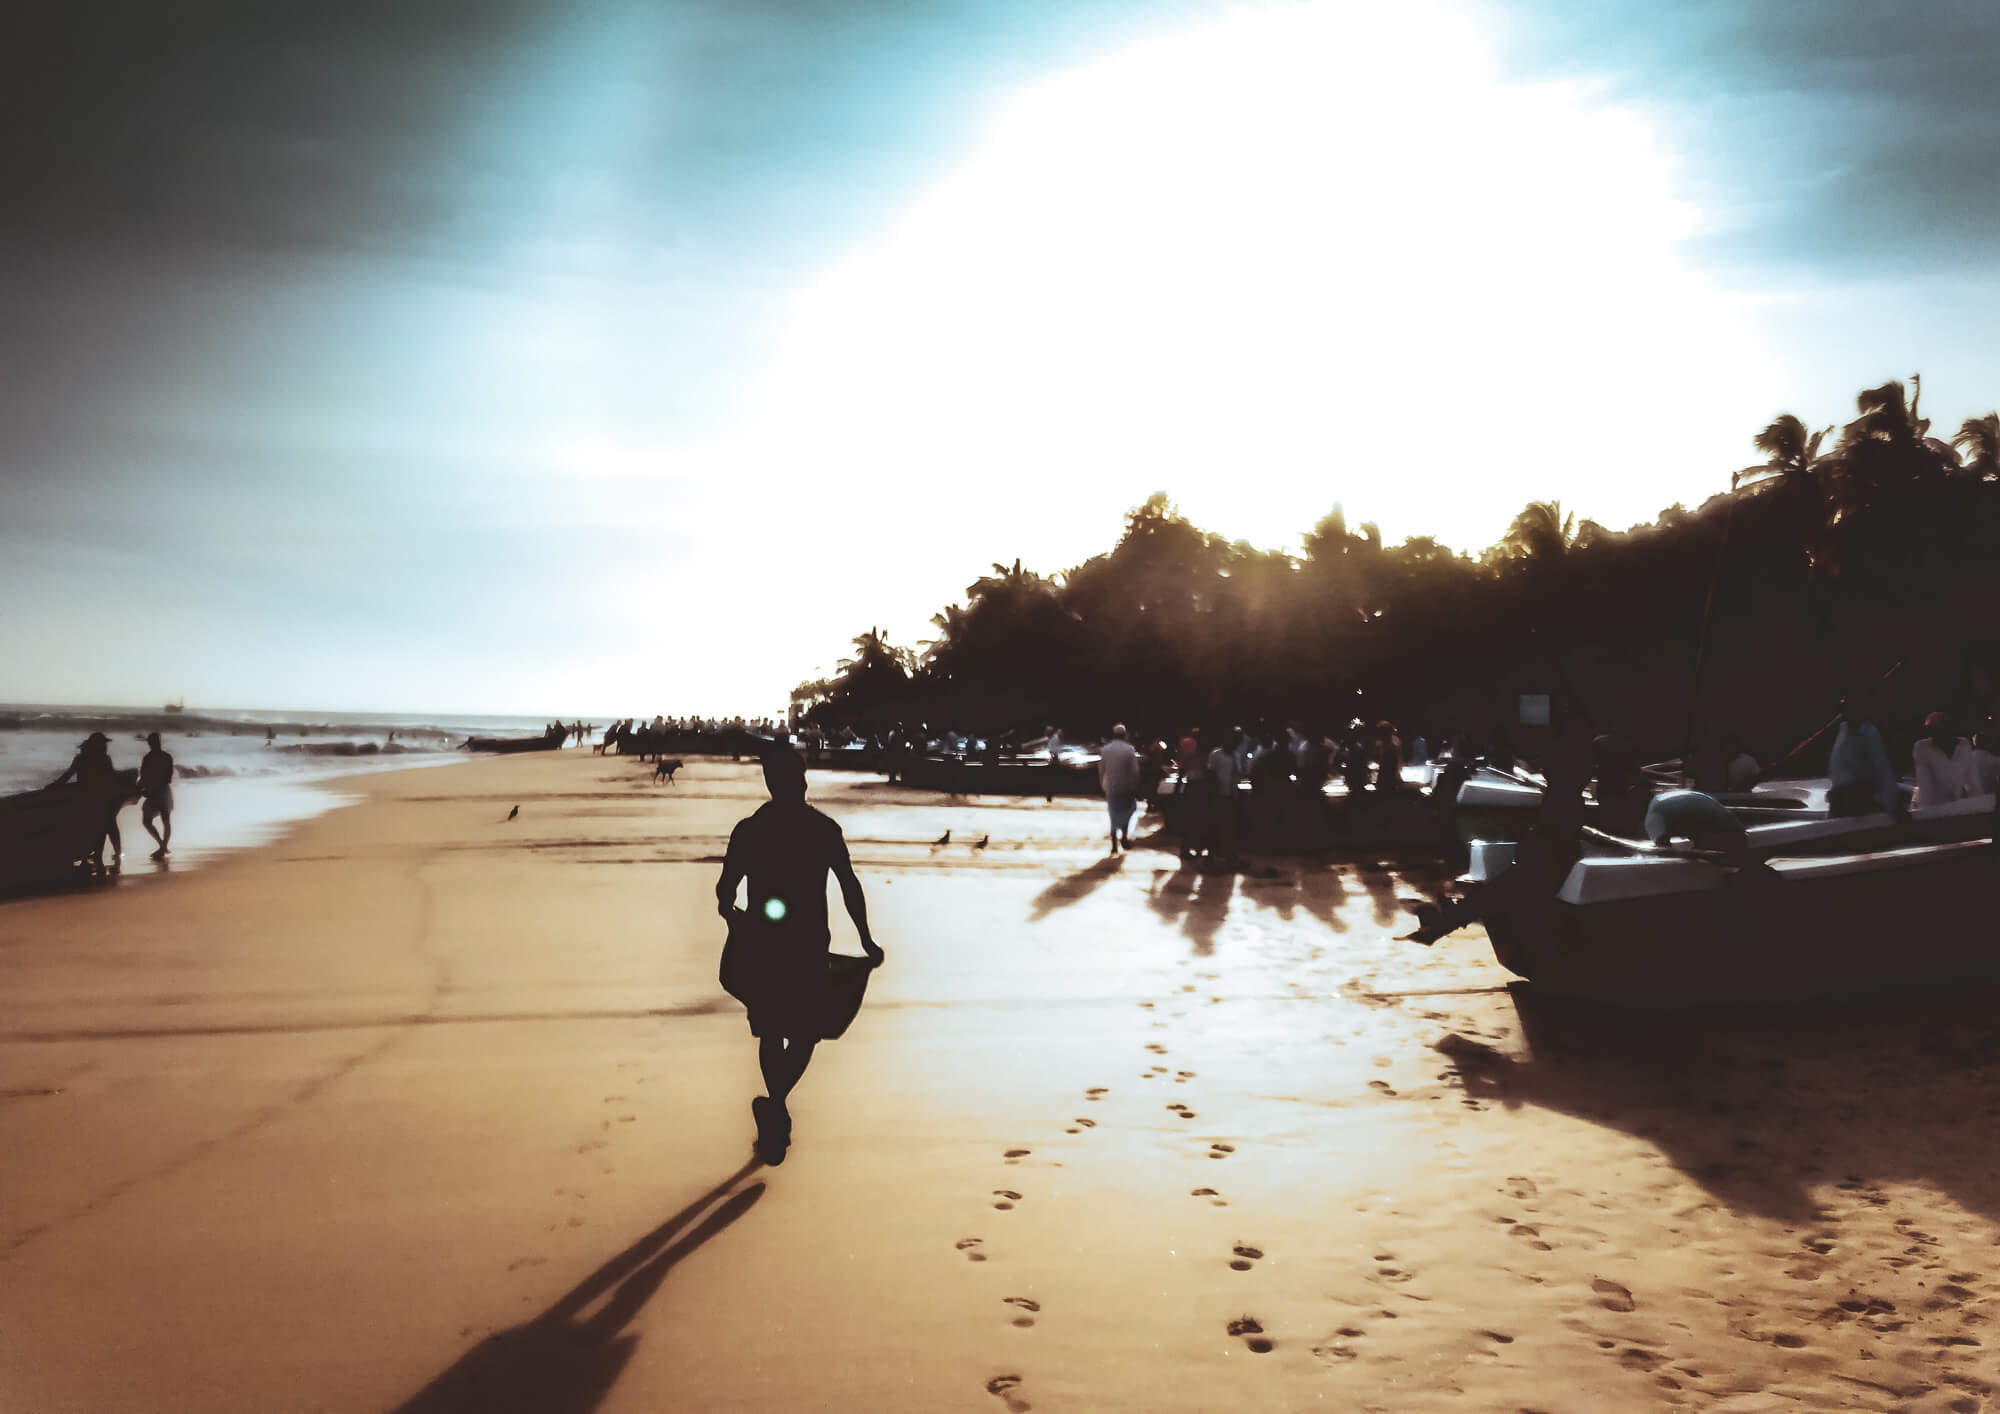 Arugam Bay Main Beach - the number one place to go for backpackers exploring Sri Lanka on an itinerary